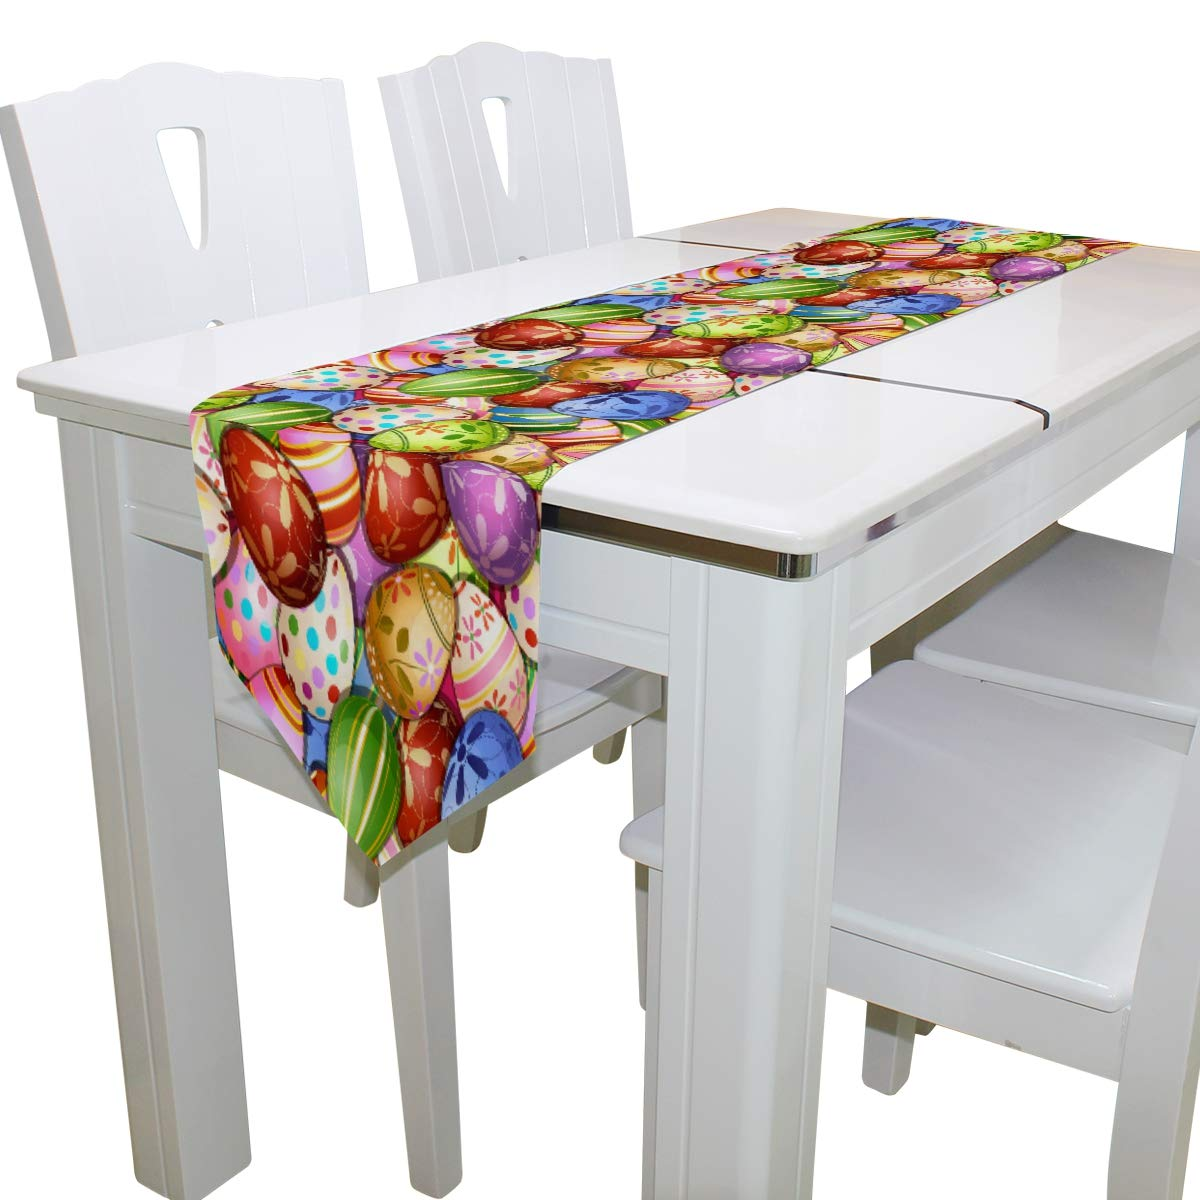 Spring Lucky Easter Bunny Egg Flower Long Table Runner 13x70 inch, Spring Holiday Butterfly Rectangle Table Runner Polyester Fabric Cloth Placemat for Office Kitchen Dining Wedding Party Home Decor